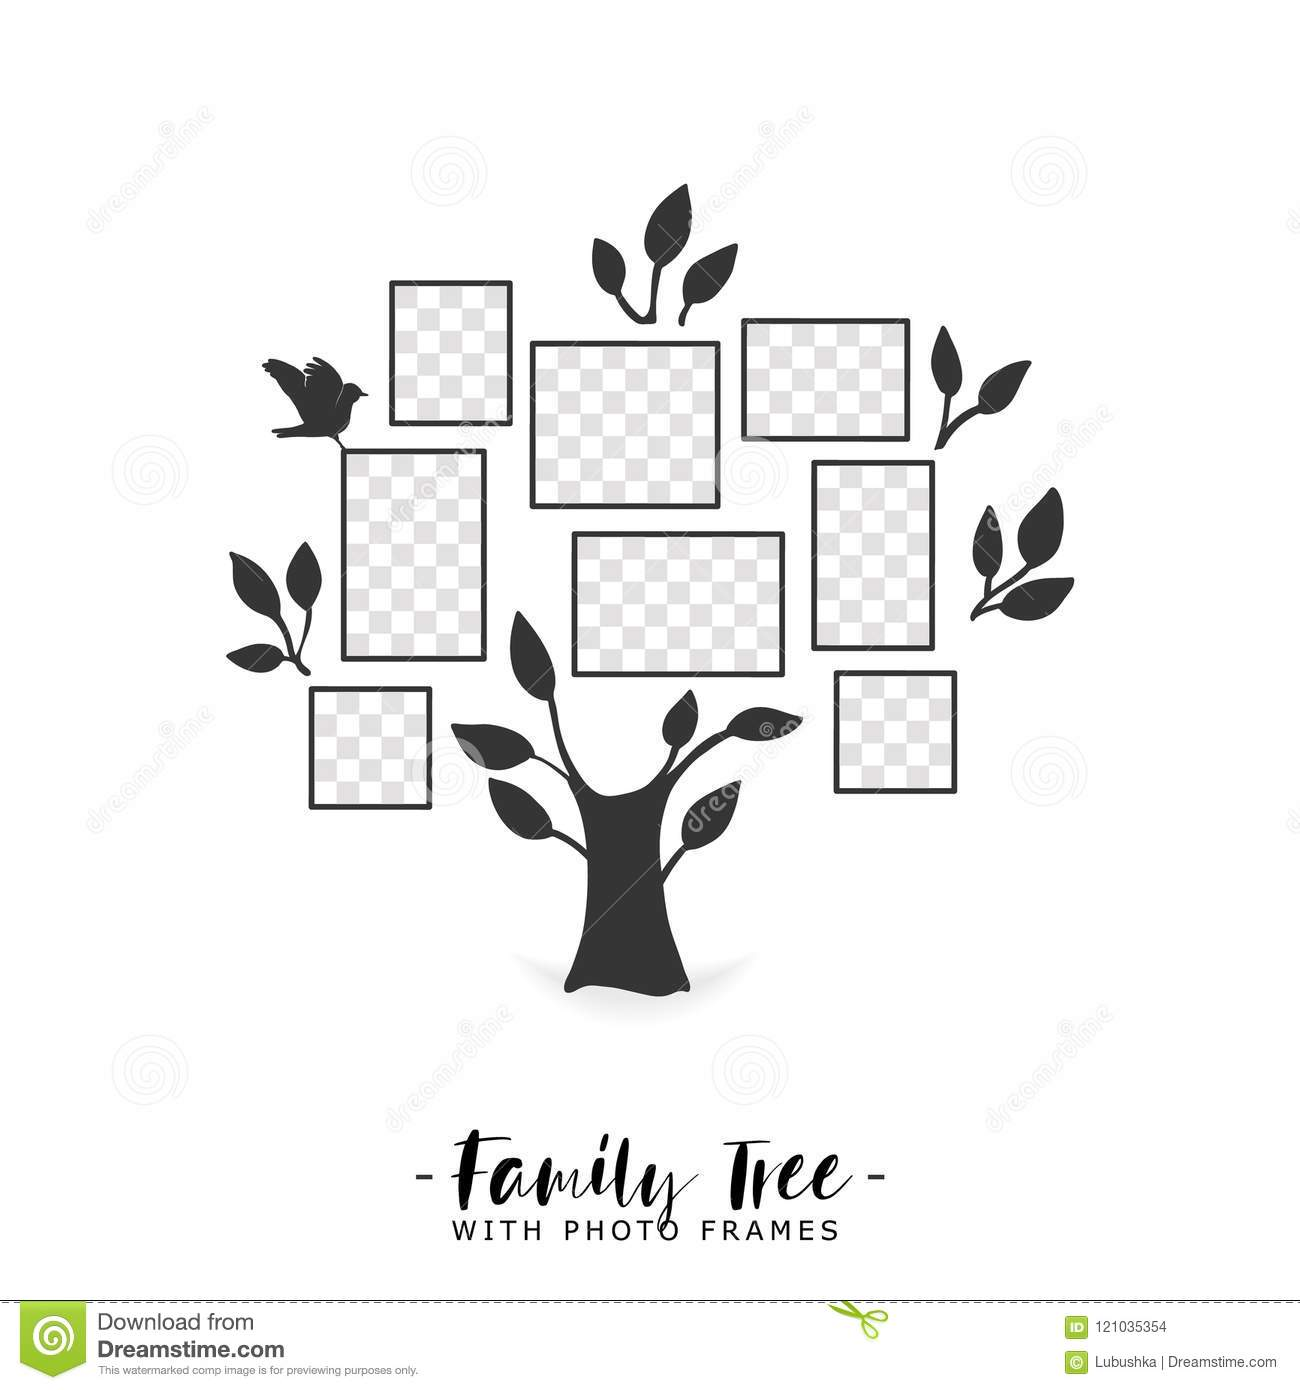 Family Tree With Photo Frames. Stock Vector - Illustration of gift ...